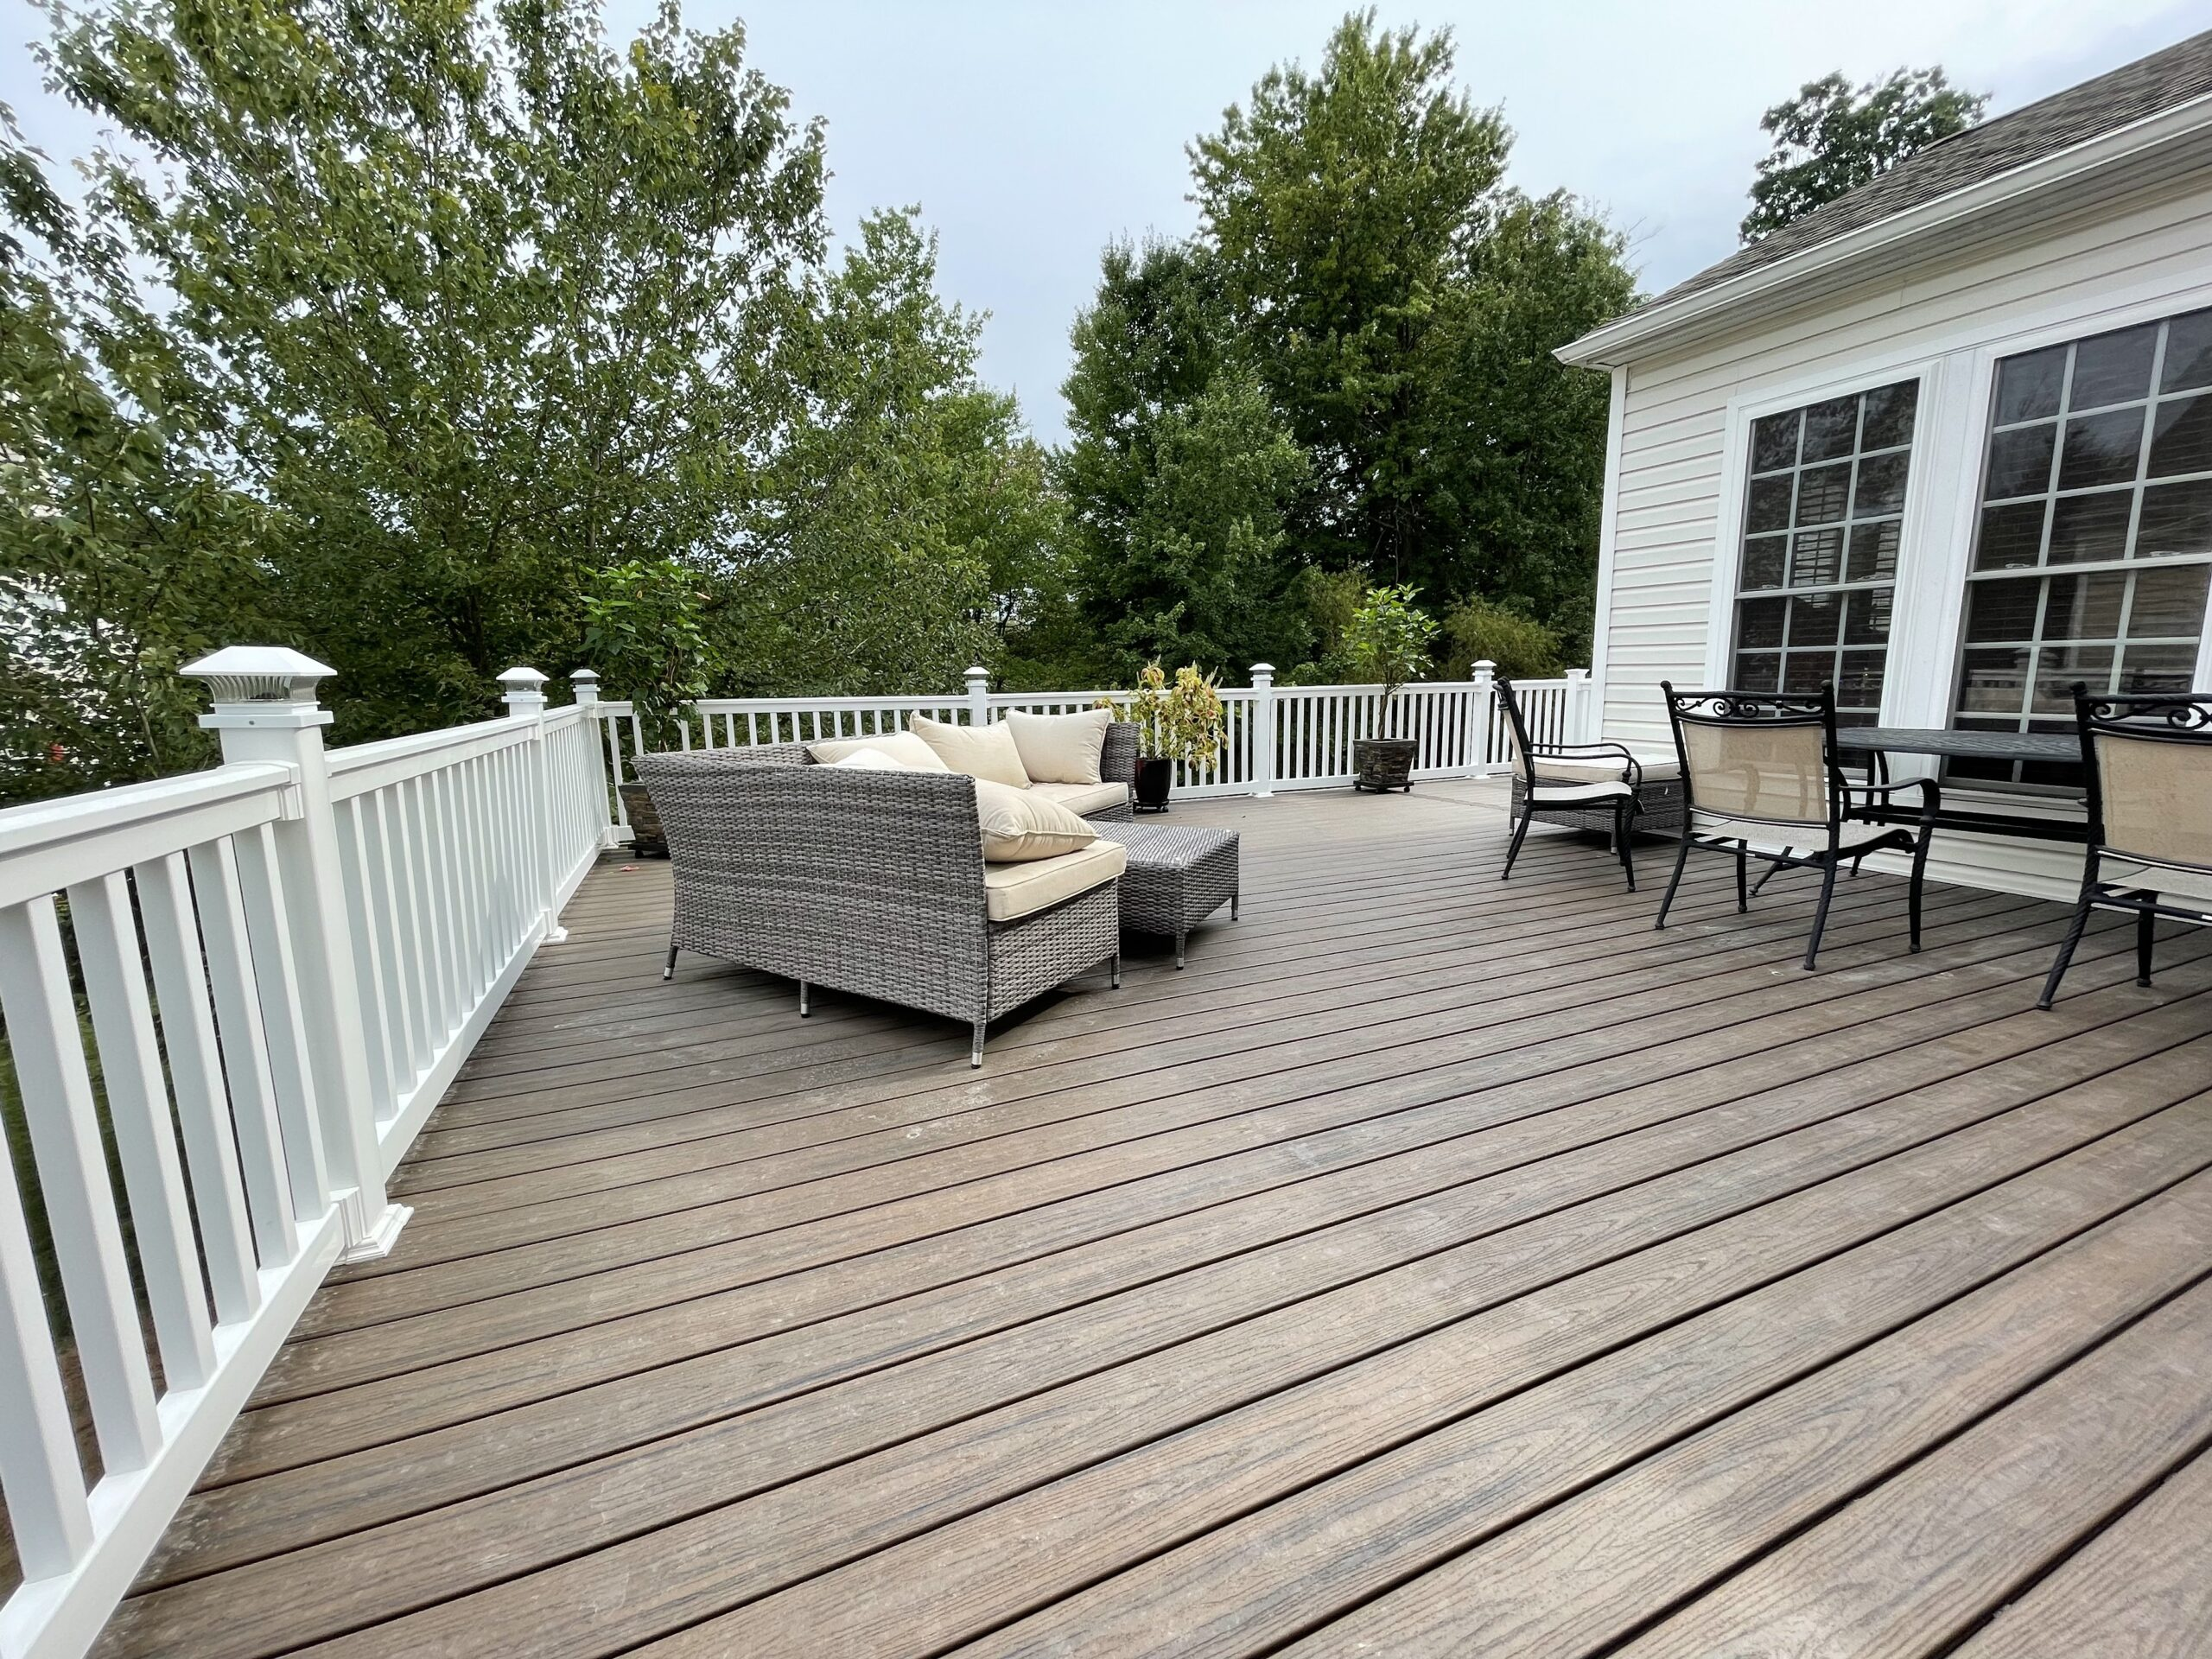 Decking Contractor Chester Springs Chester County PA